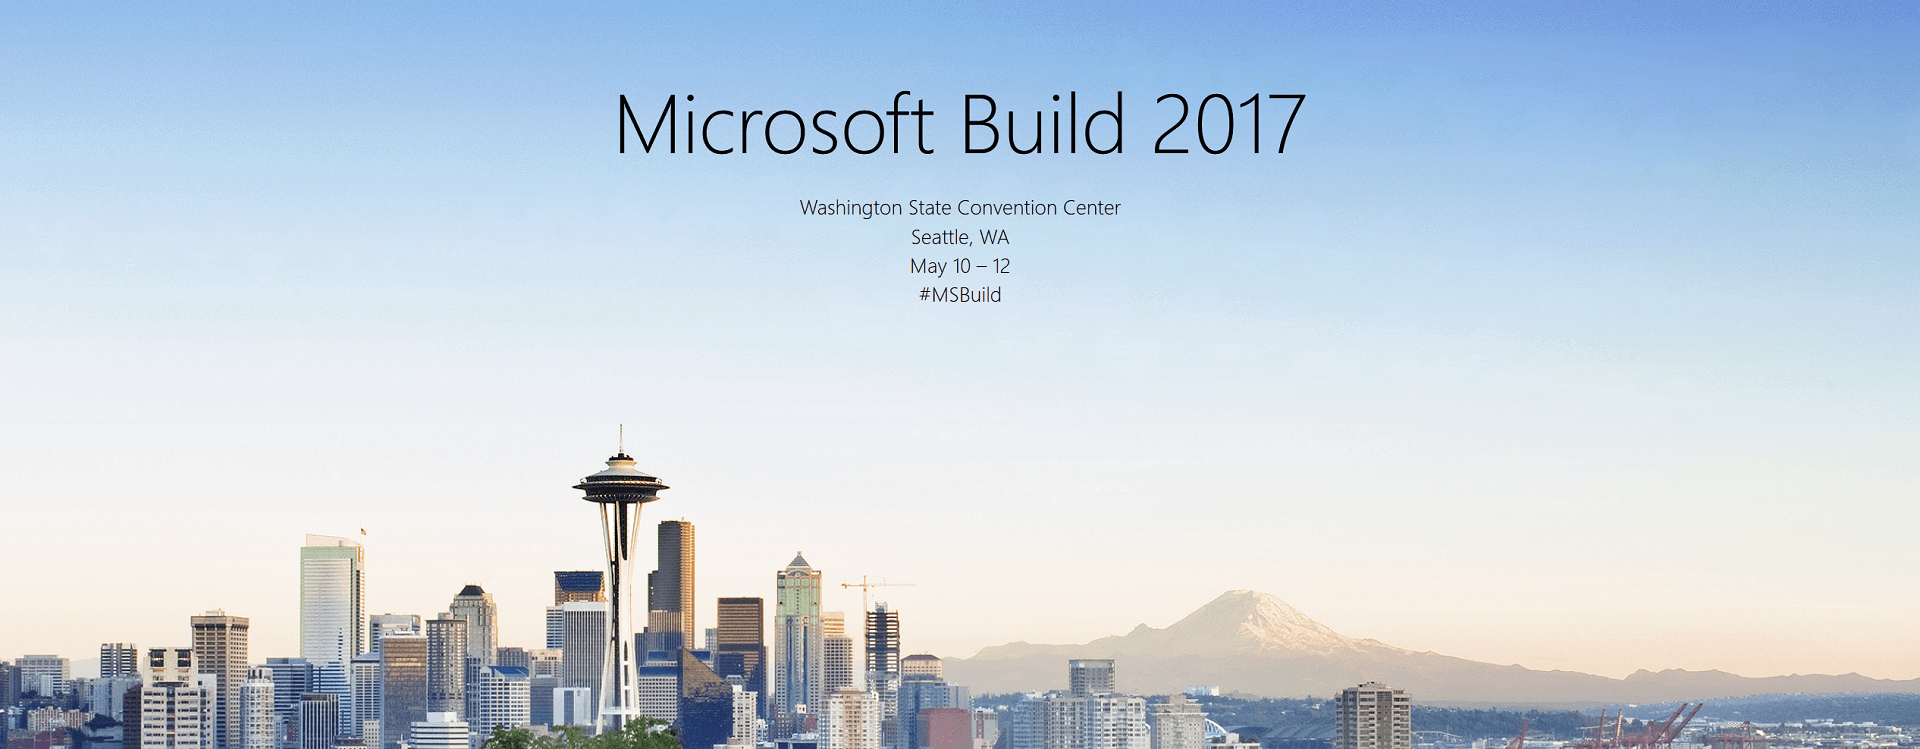 My Perspective of the Build 2017 Conference